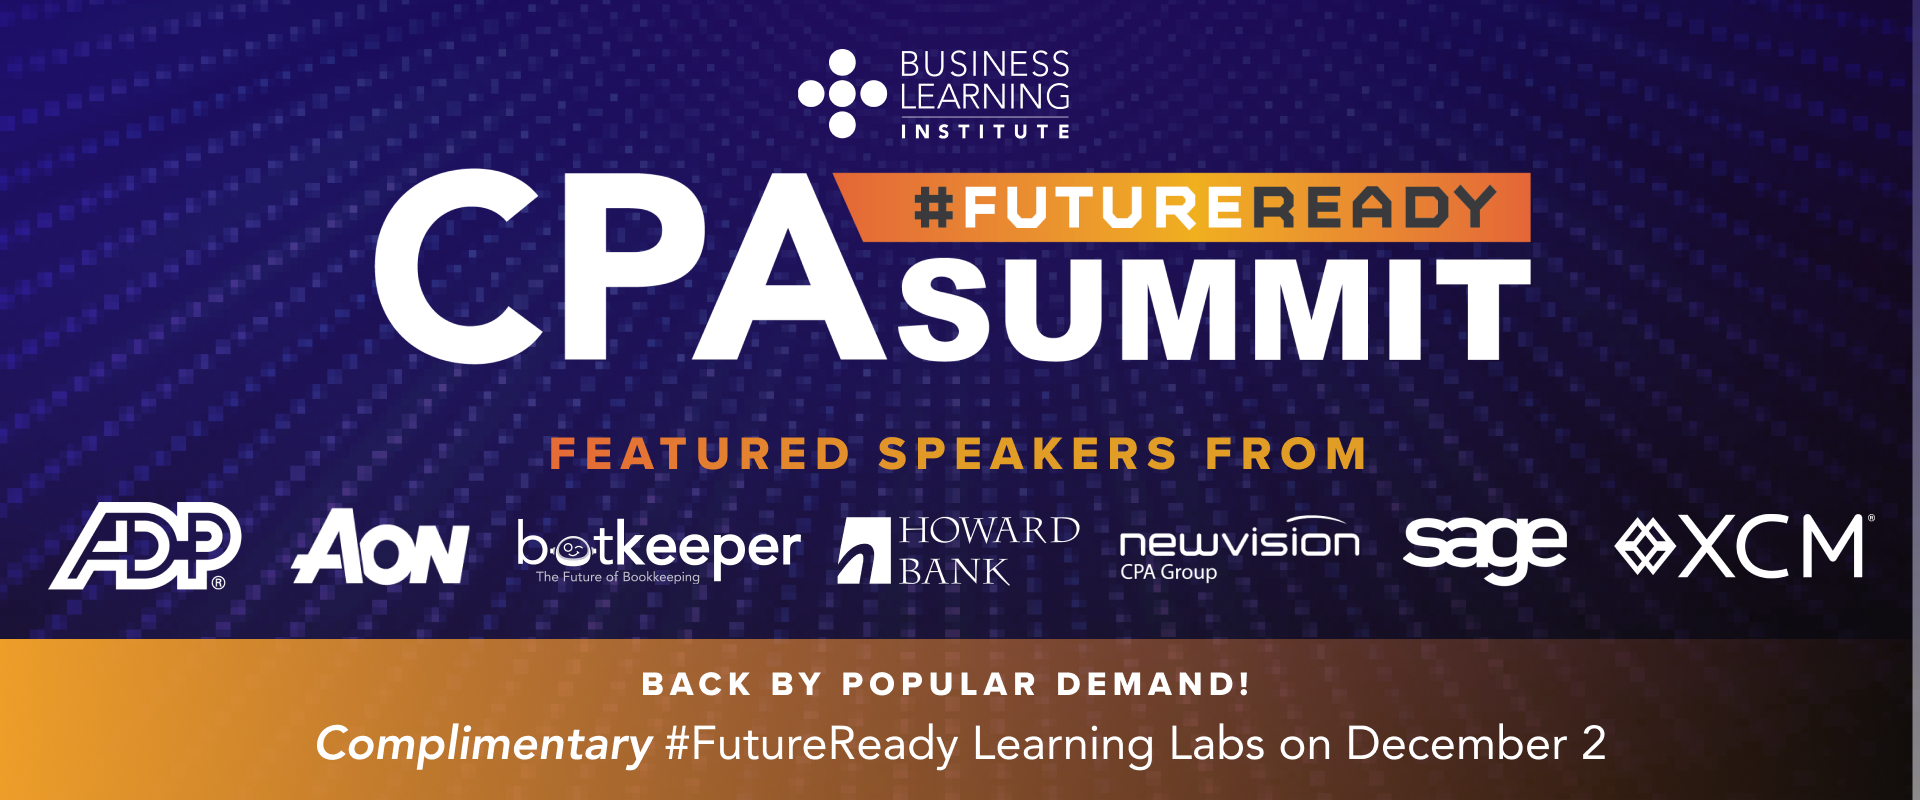 2019 CPA #FUTUREREADY SUMMIT